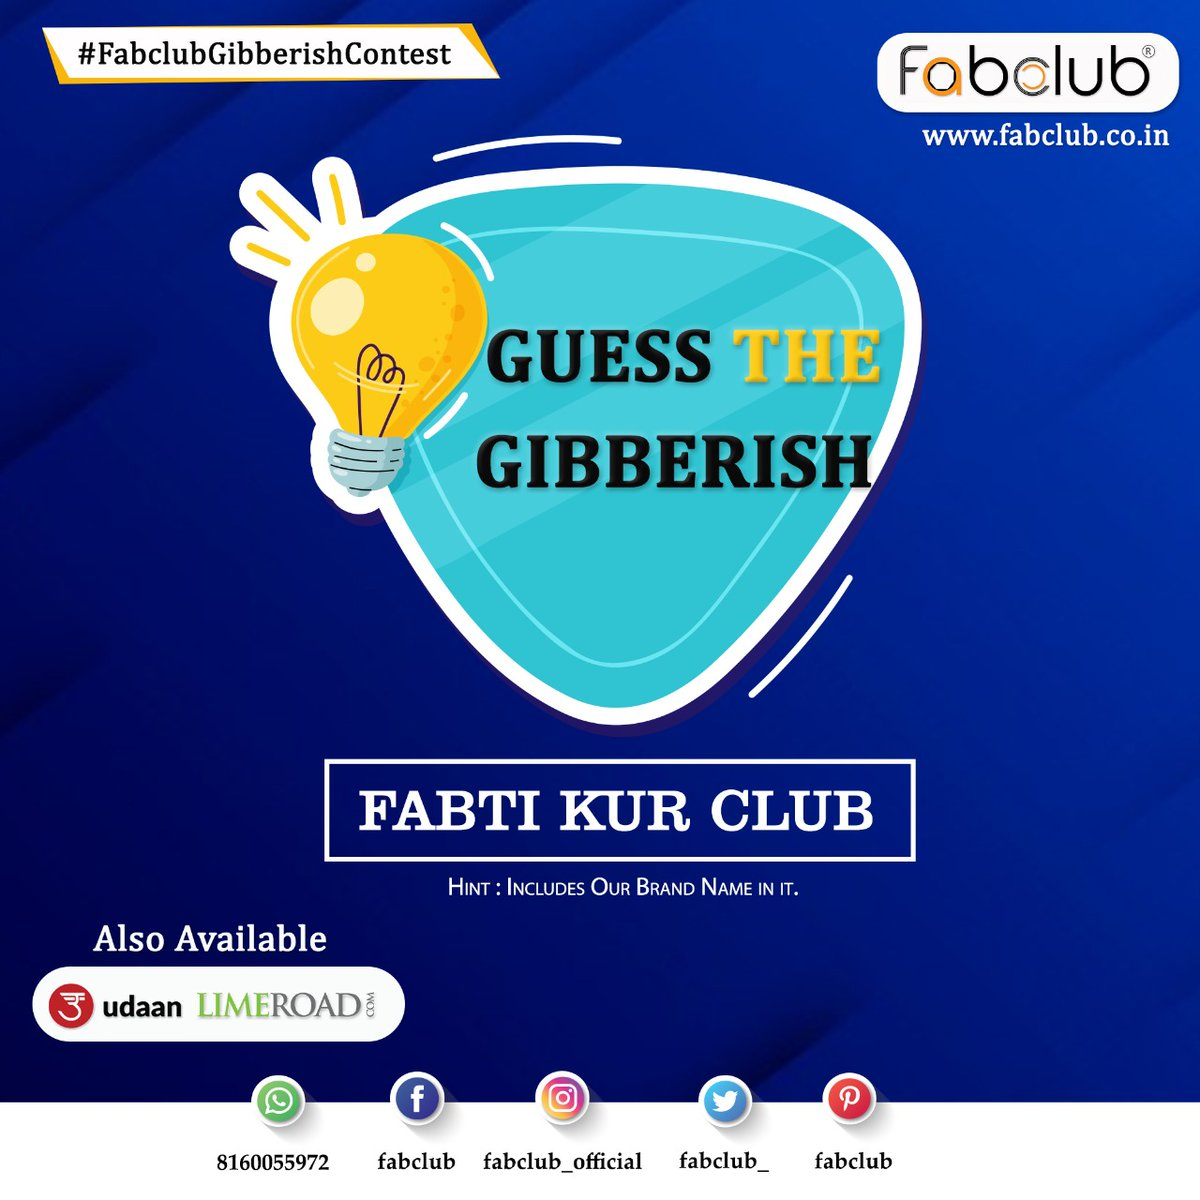 #ContestAlert #Contest  Comment Your Answer And Your Chance To Win! #FabclubGibberishContest  T&C https://t.co/6sIOqtJgW0 Subscribe us on Youtube https://t.co/WsAa1IErm0  #Gibberish #GibberishContest #GibberishChallenge  #ContestIndia #GiveAway #Quiz #GiveAwayContest https://t.co/SJtkCX1CTF